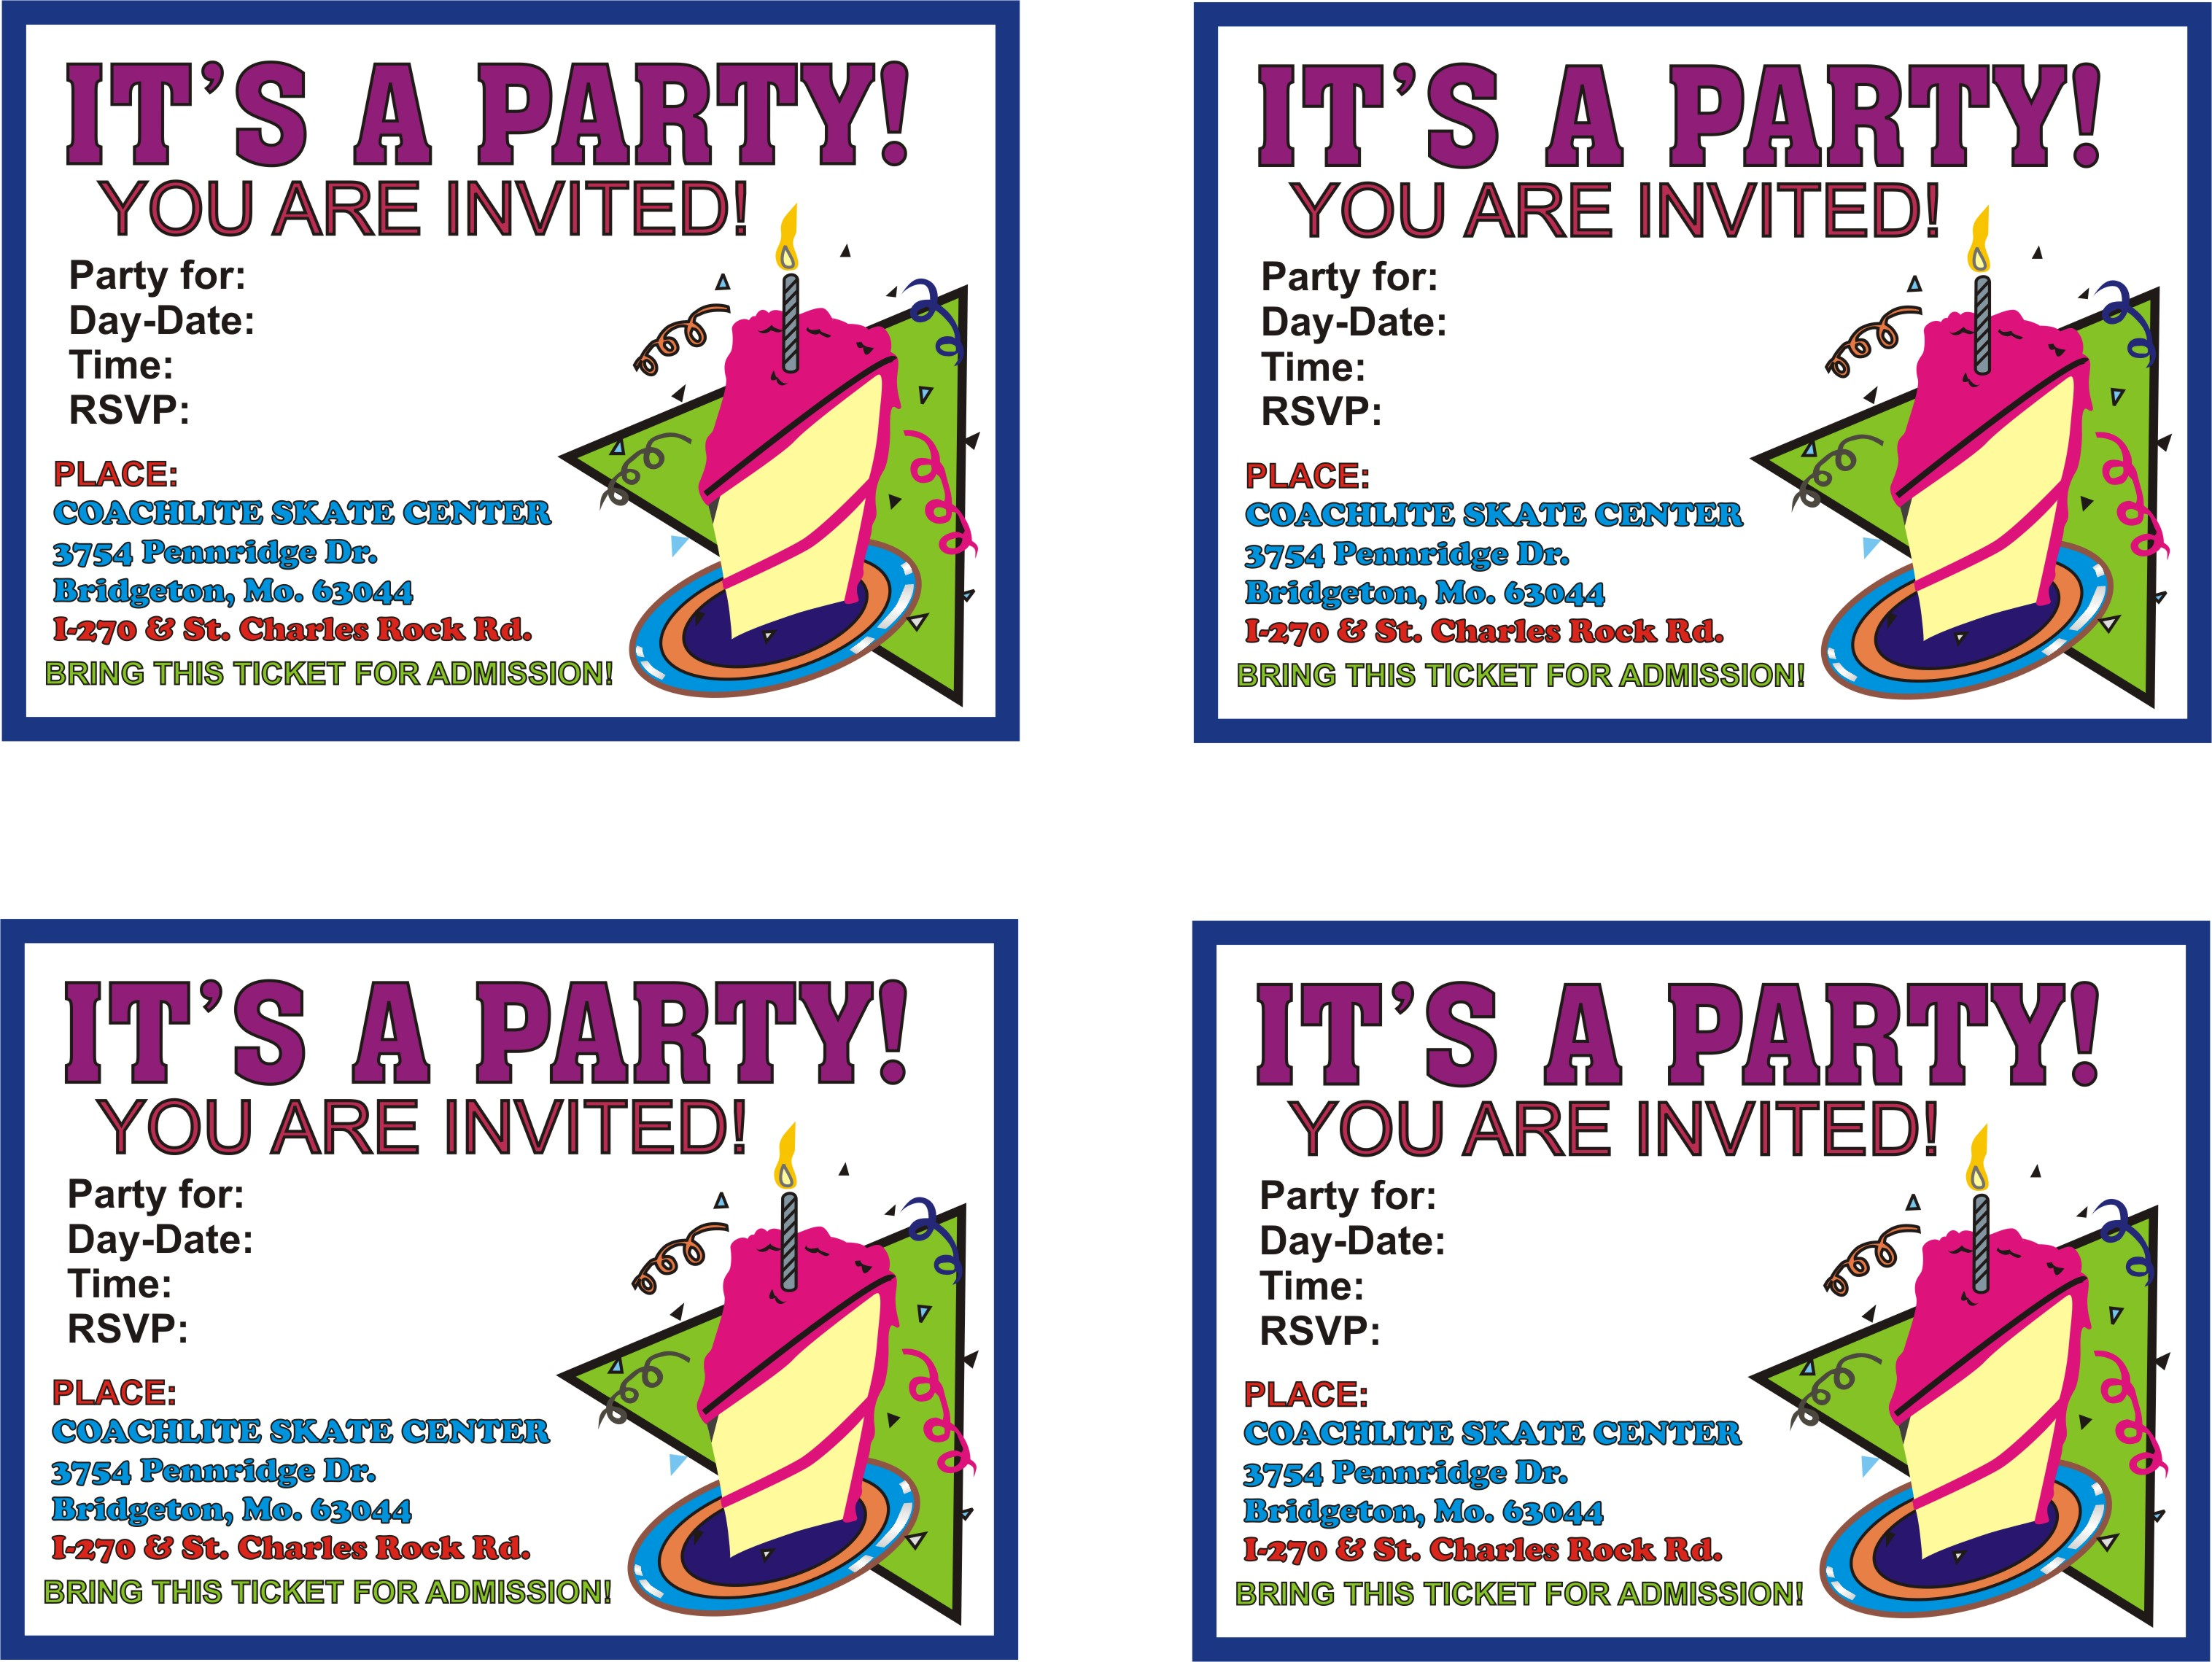 free birthday borders for invitations ; free-dr-seuss-party-printables-inspirational-free-printable-party-invitations-templates-theruntime-com-of-free-dr-seuss-party-printables